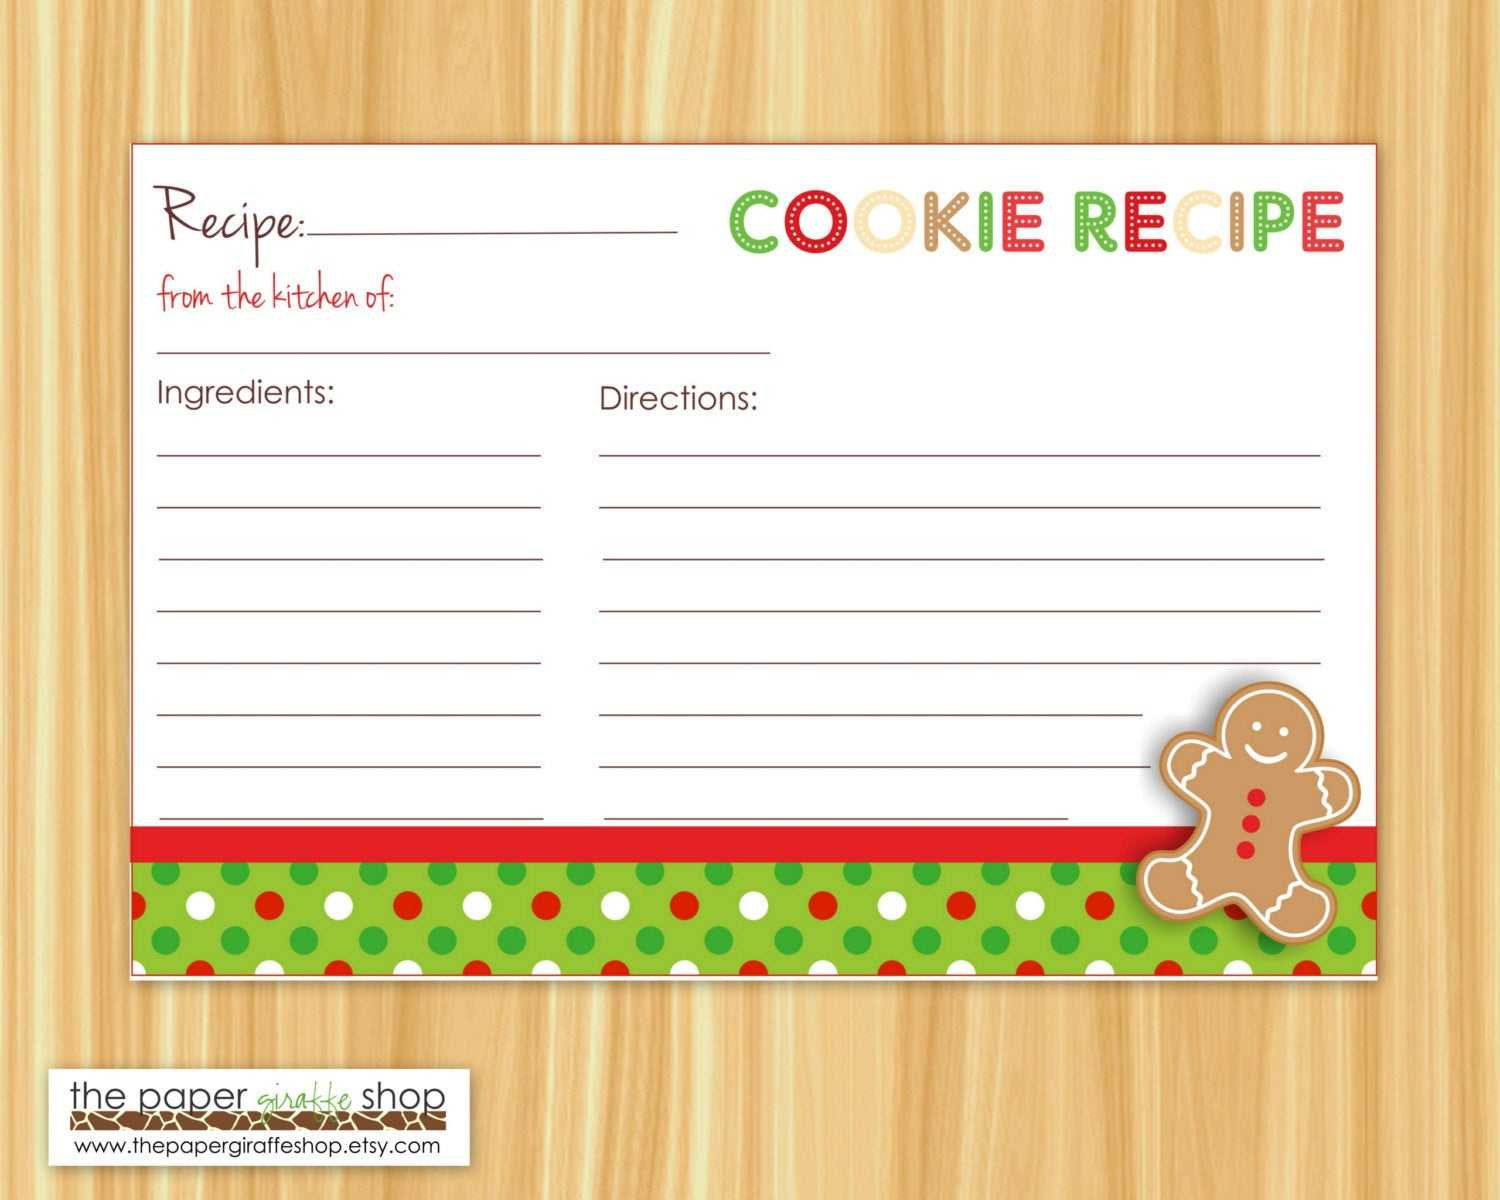 Cookie Exchange Recipe Card Template - Atlantaauctionco with regard to Cookie Exchange Recipe Card Template